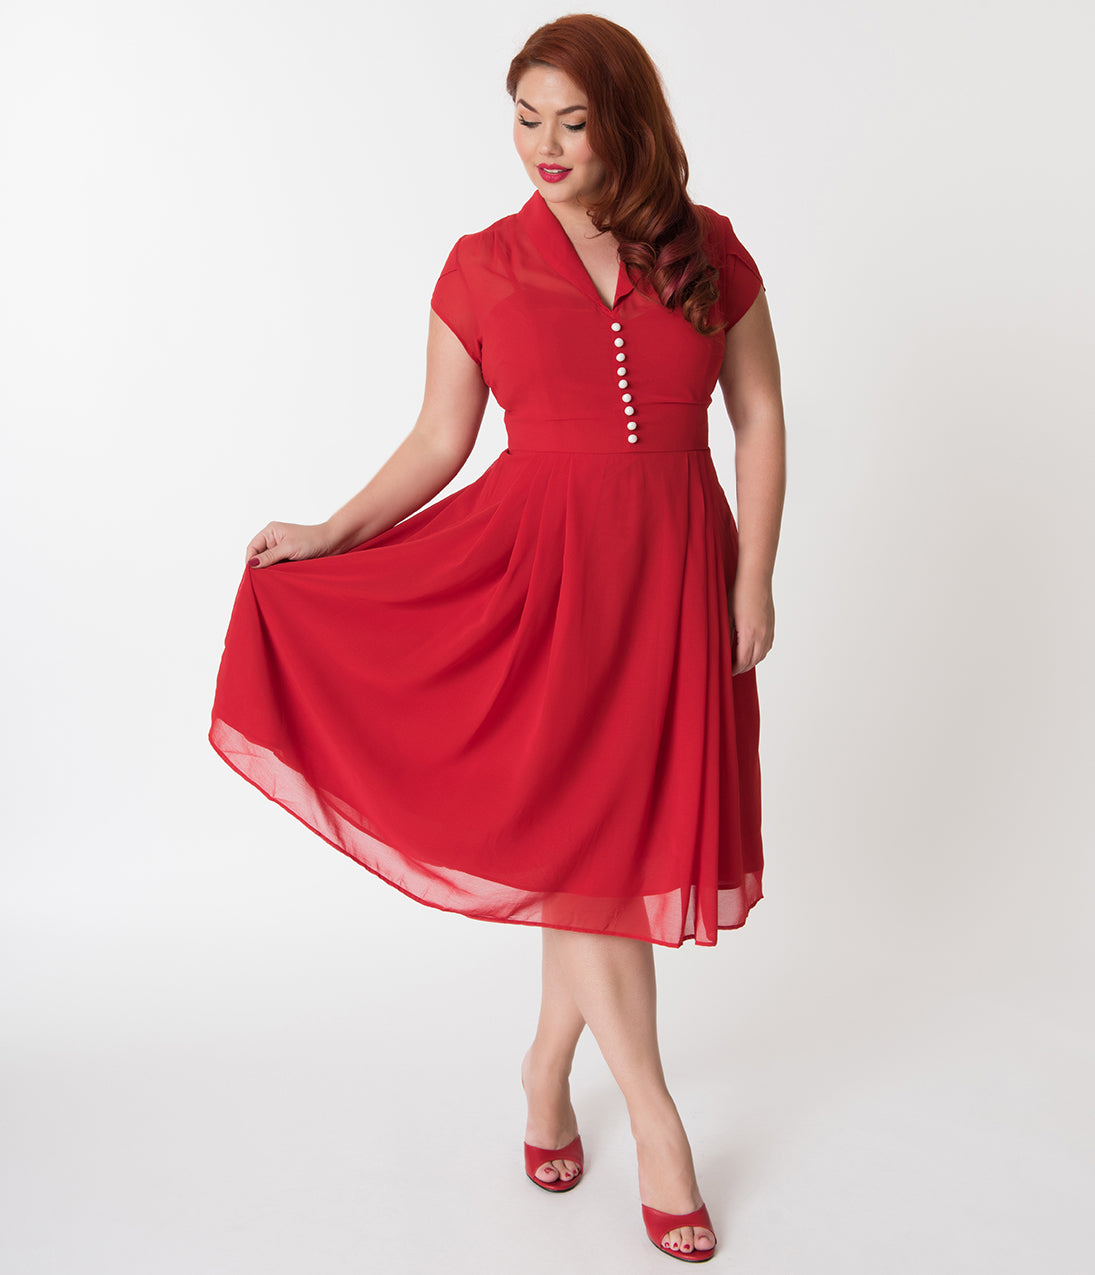 1940s Evening, Prom, Party, Cocktail Dresses & Ball Gowns Hell Bunny Plus Size Red Chiffon Cap Sleeve Paige Flare Dress $92.00 AT vintagedancer.com